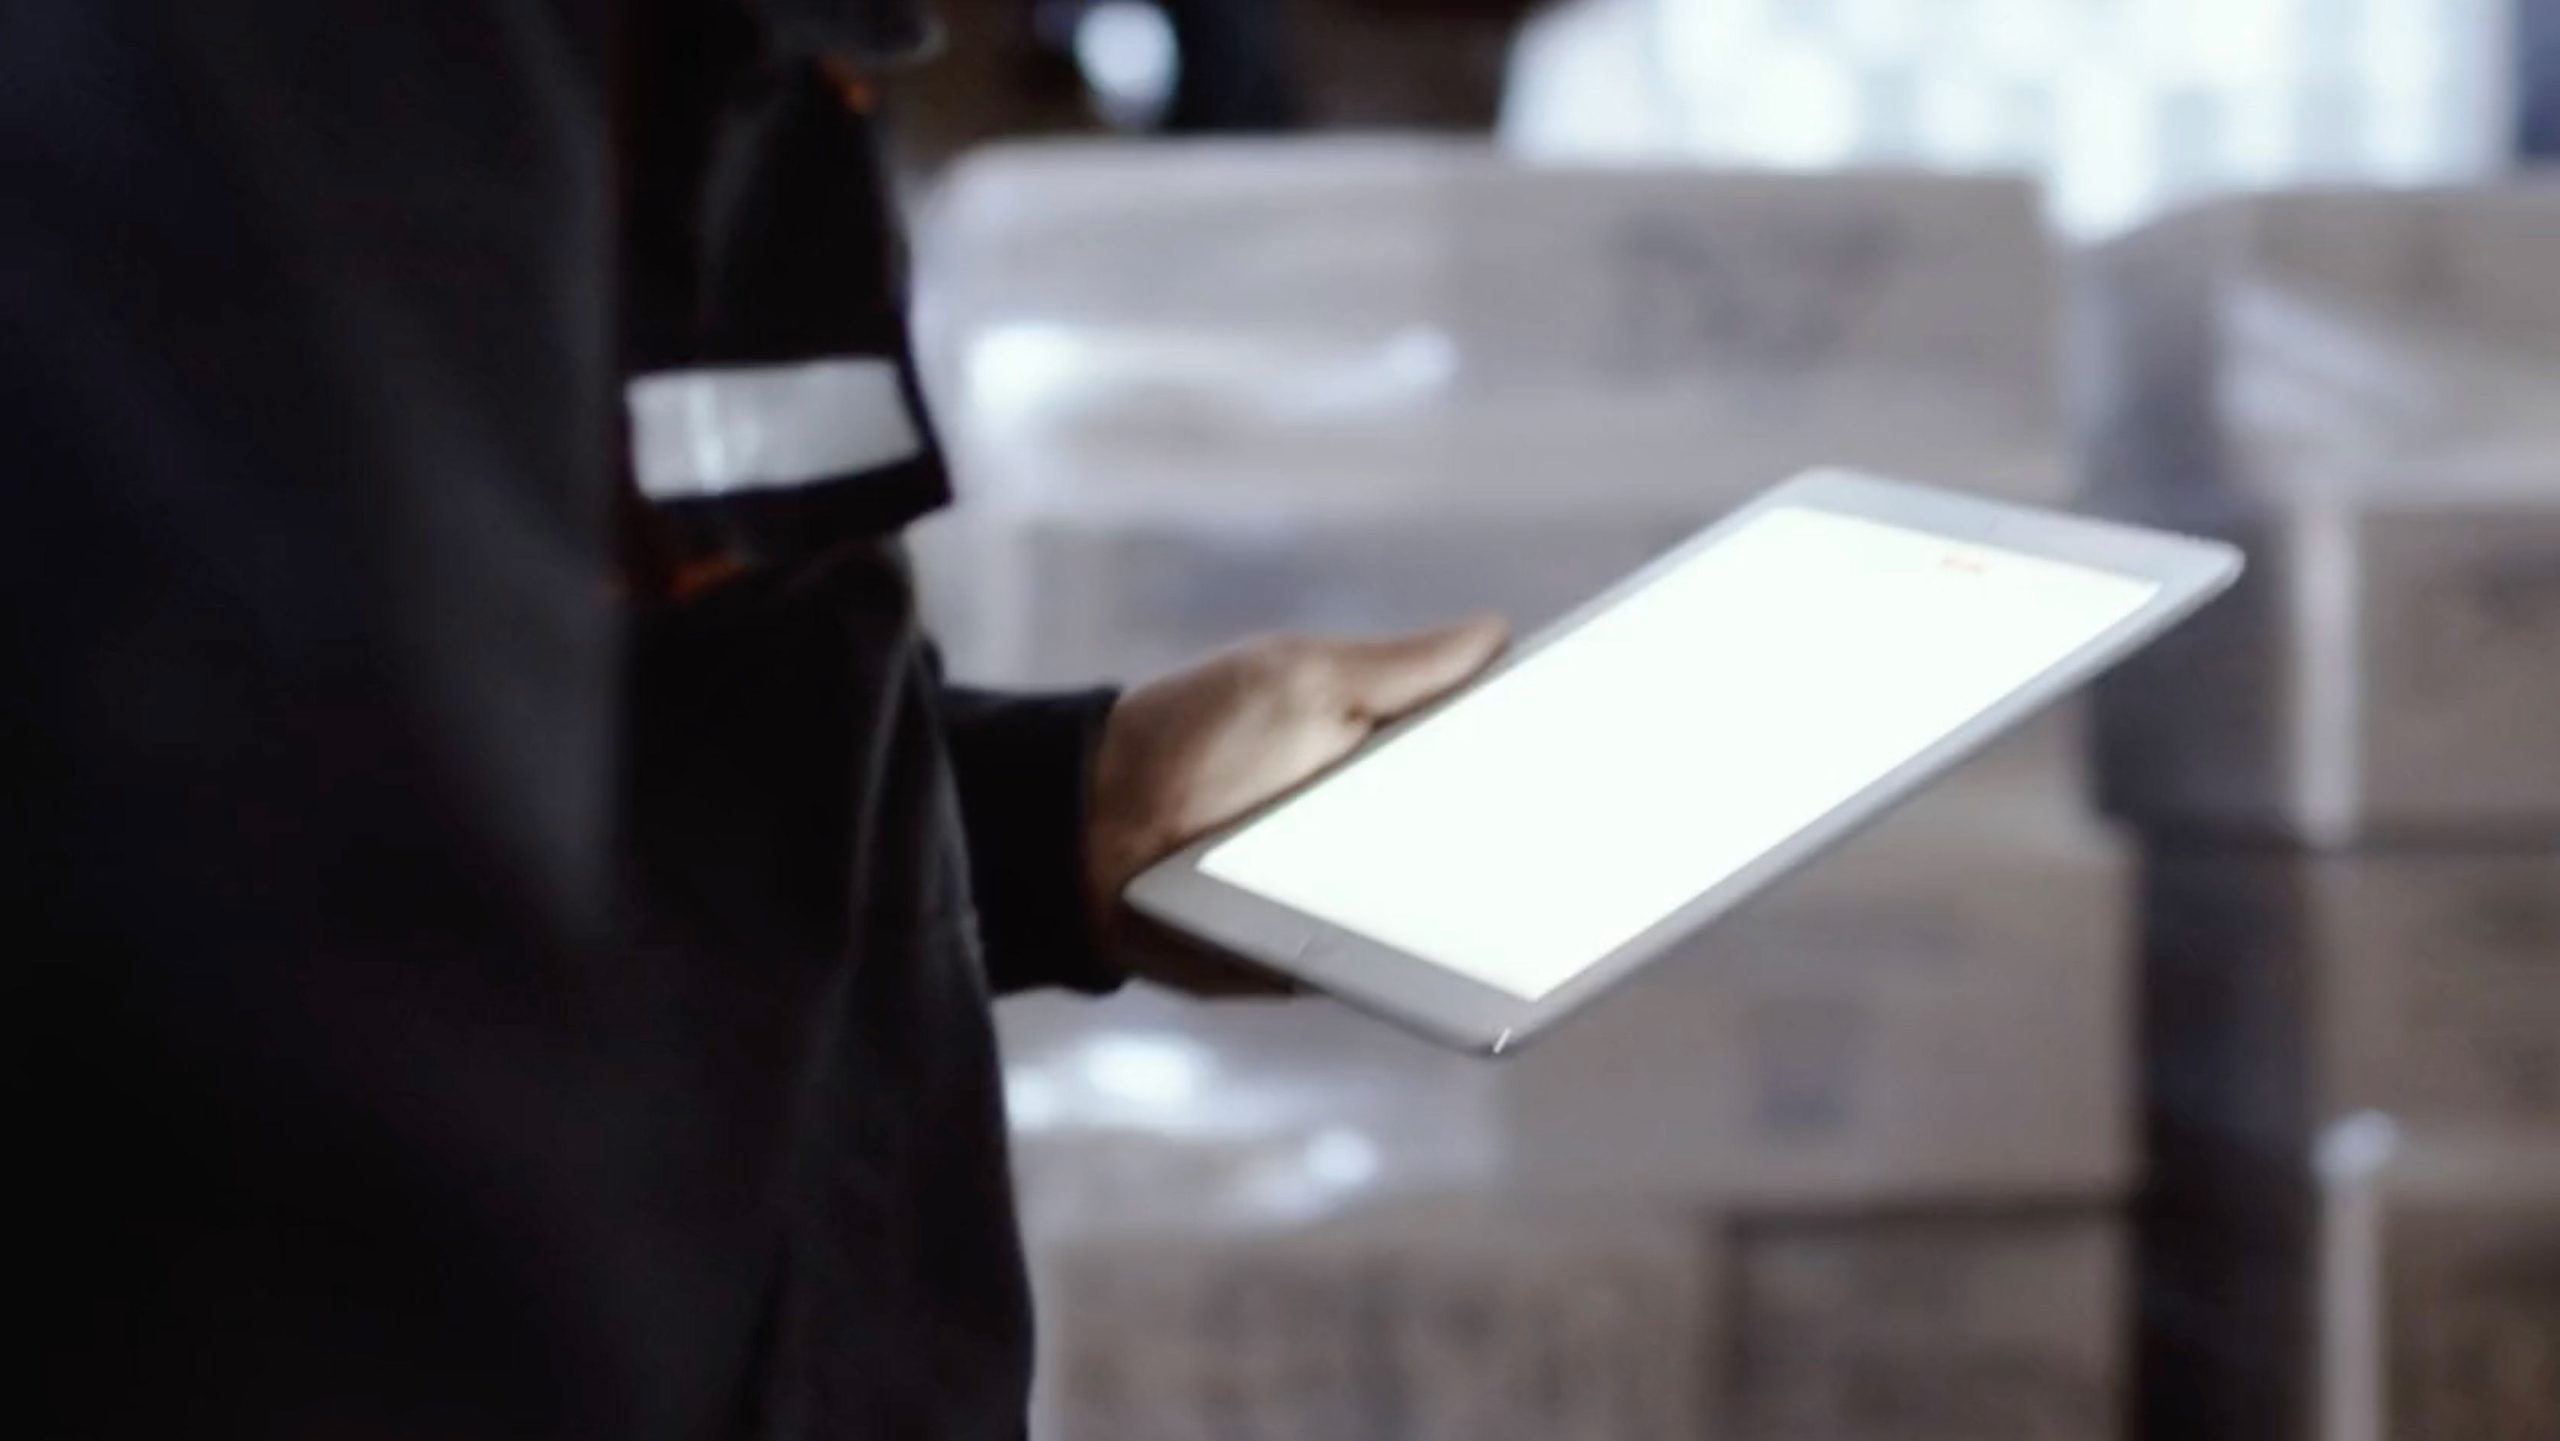 Man holding an Ipad in a warehouse.